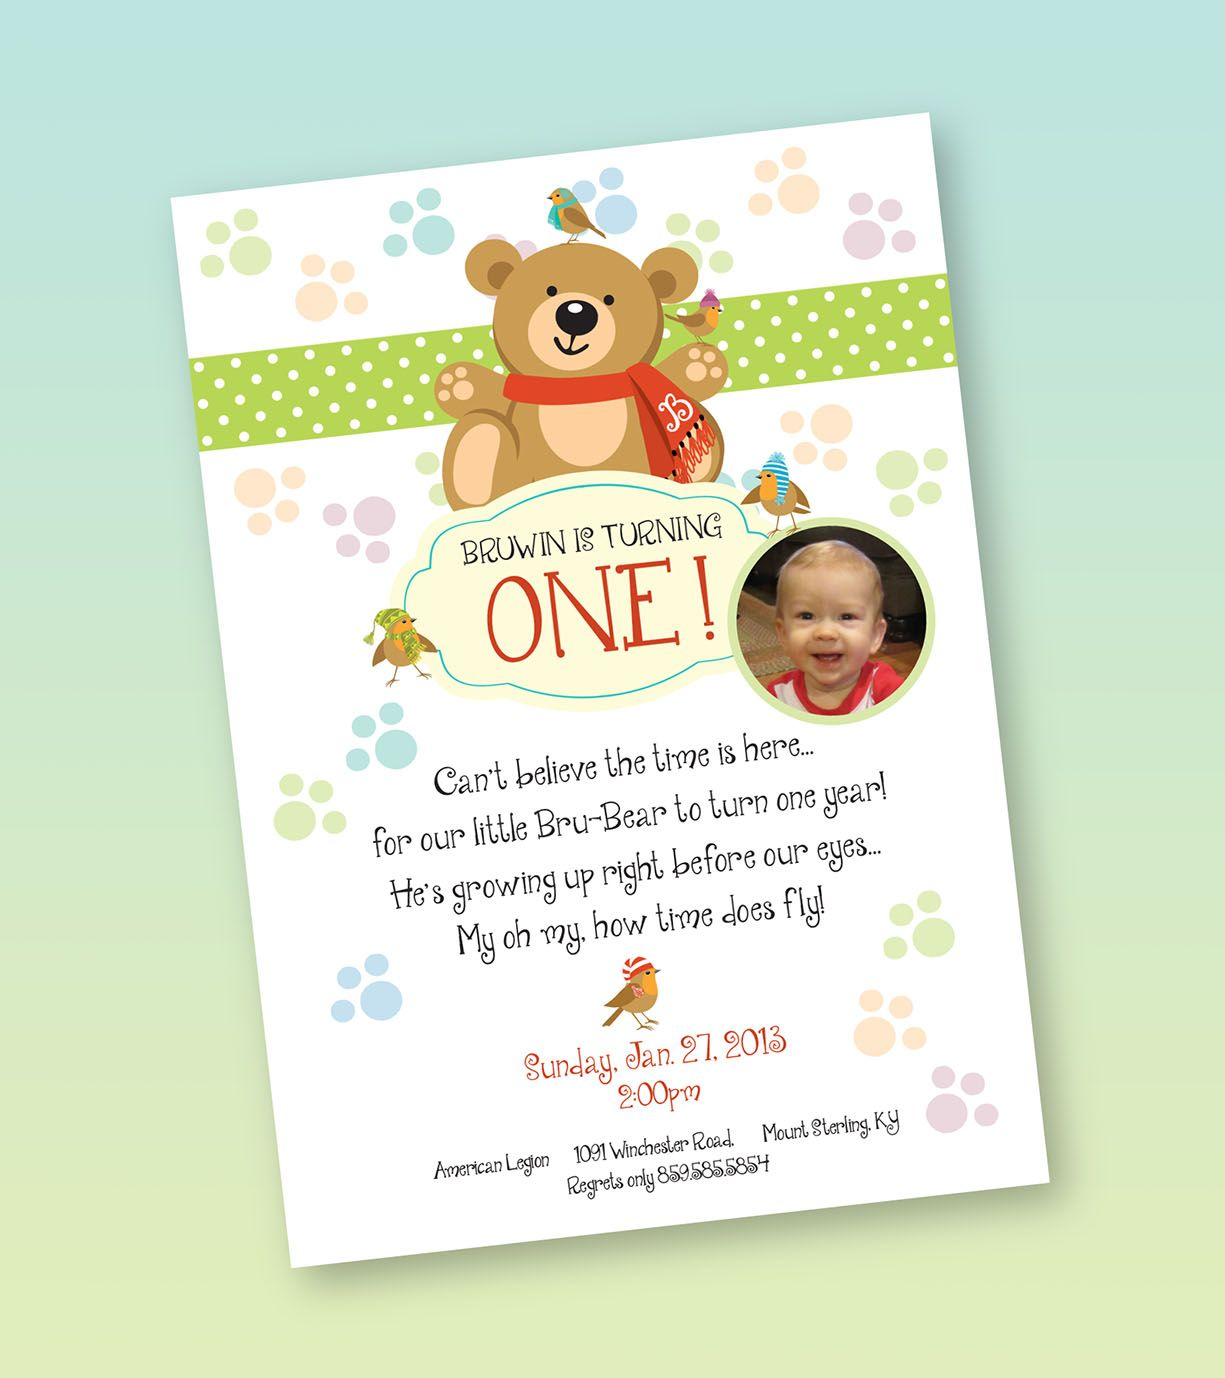 One year old boy birthday invitation - winter/teddy bear theme ...